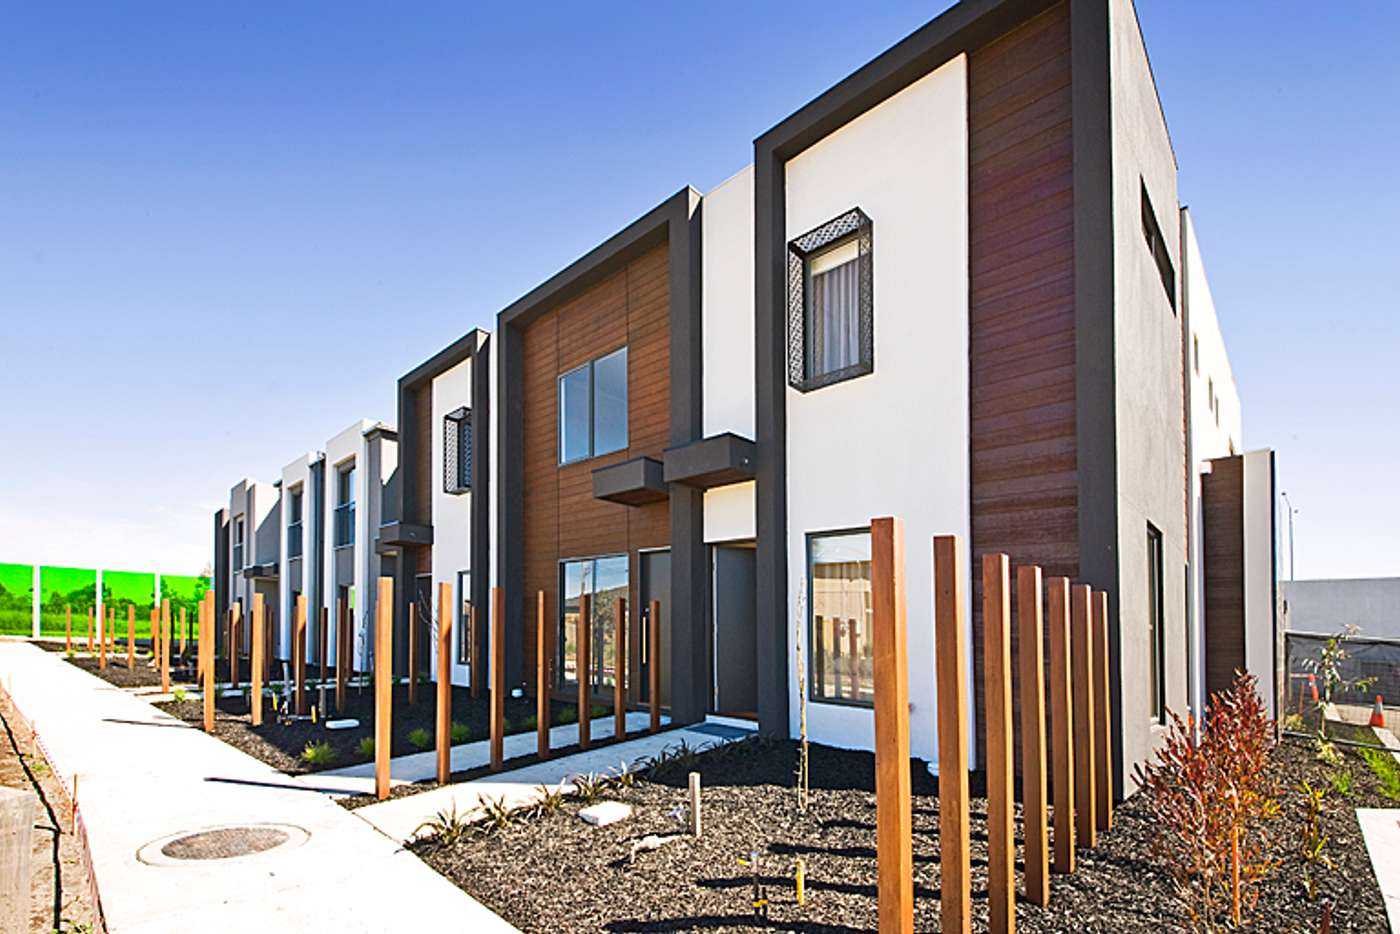 Main view of Homely townhouse listing, 131 Campaspe Way, Point Cook VIC 3030